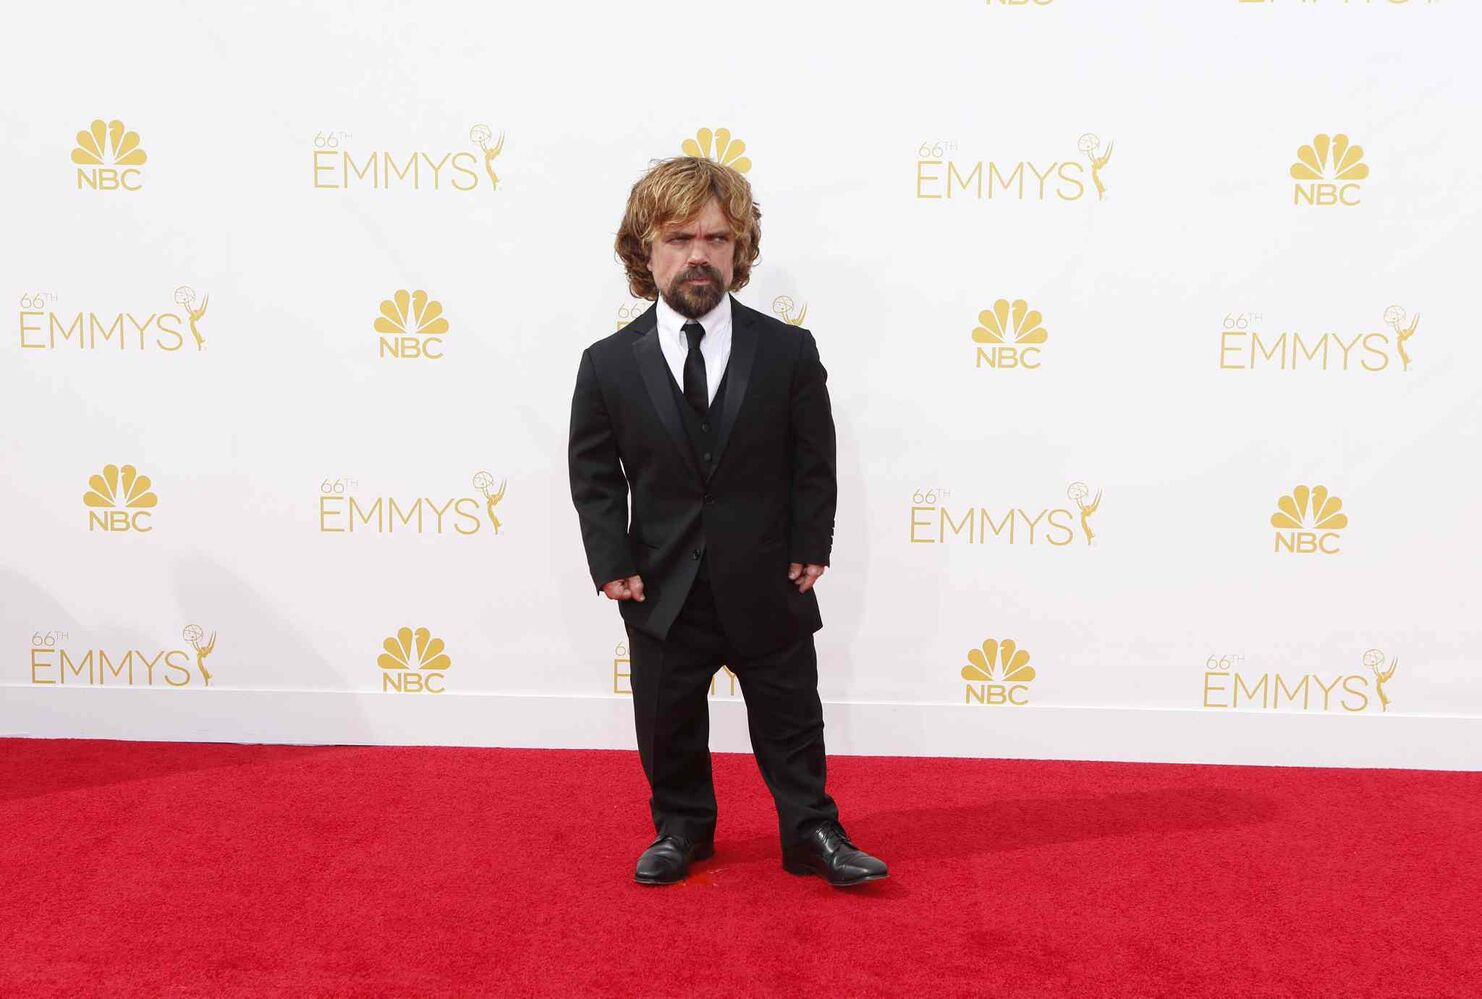 Peter Dinklage (Game of Thrones) arrives for the 66th Annual Primetime Emmy Awards at Nokia Theatre at L.A. Live in Los Angeles. (Tribune Media MCT)